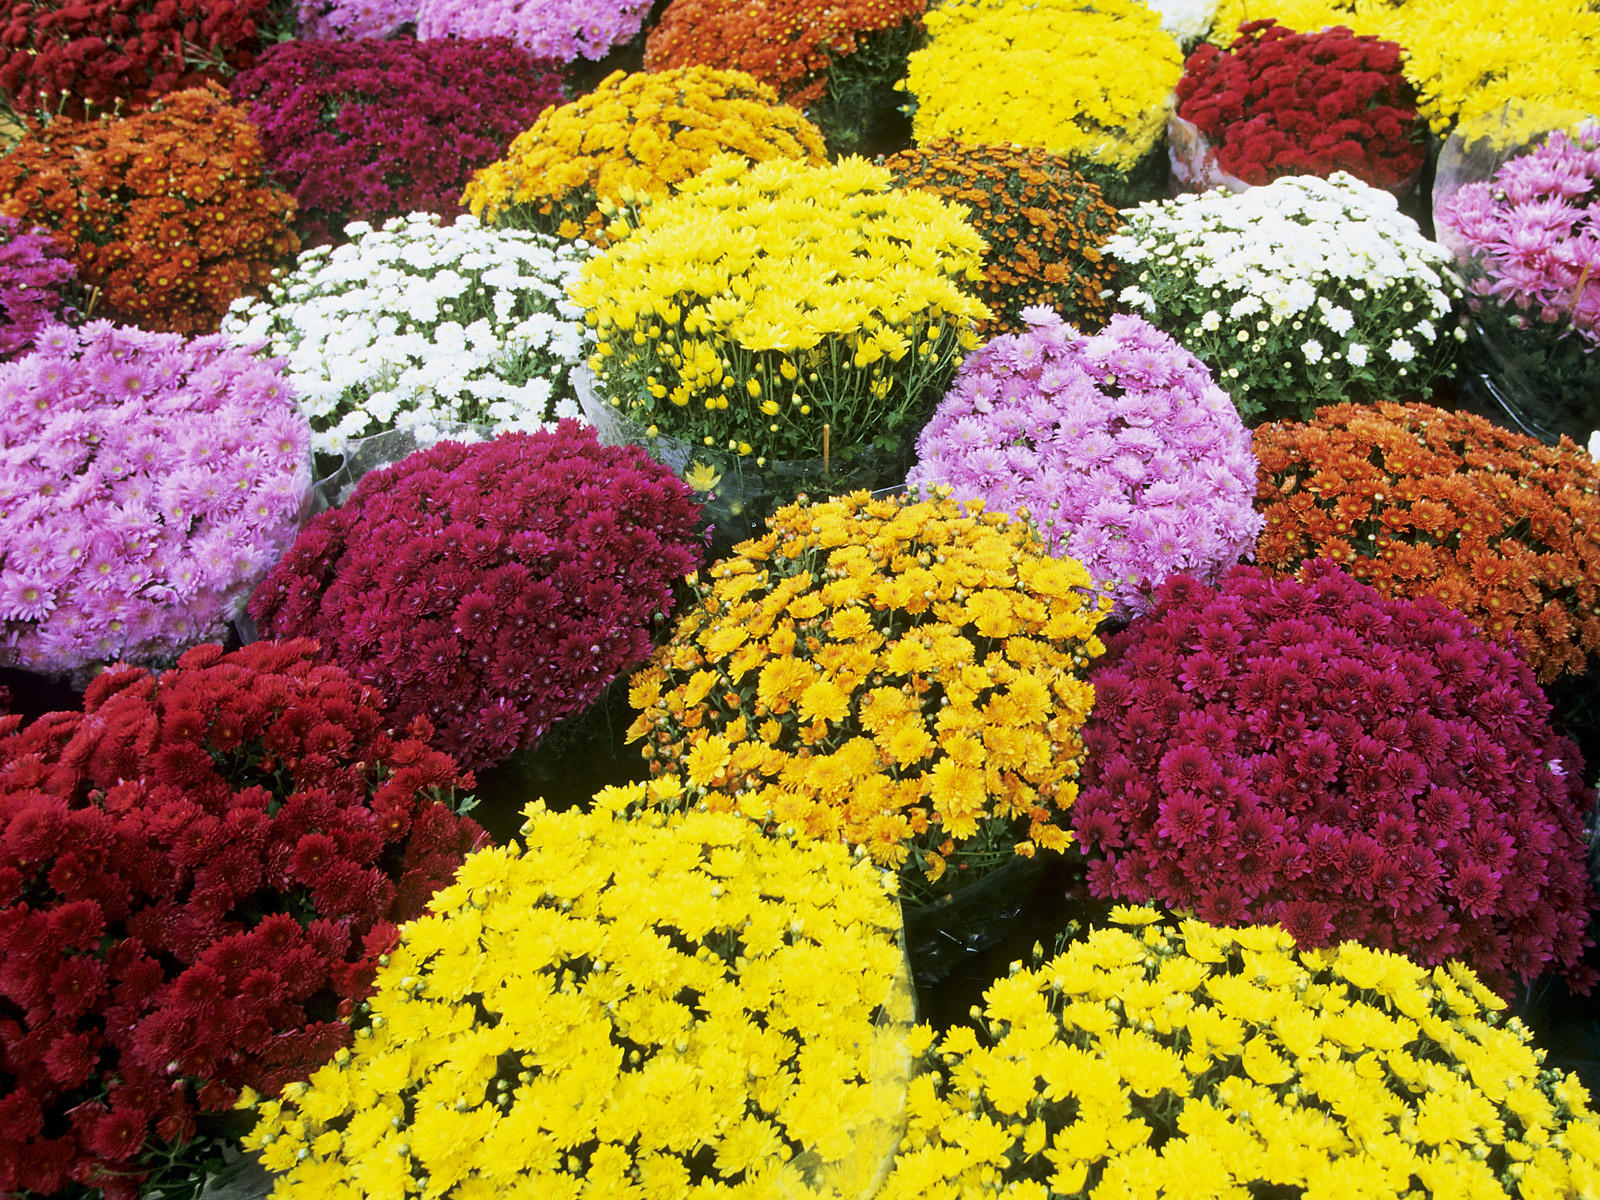 Mums Are The Royalty Of The Fall Garden And A Sure Sign That Summer Is  Breathing Its Final Breath Of The Year.